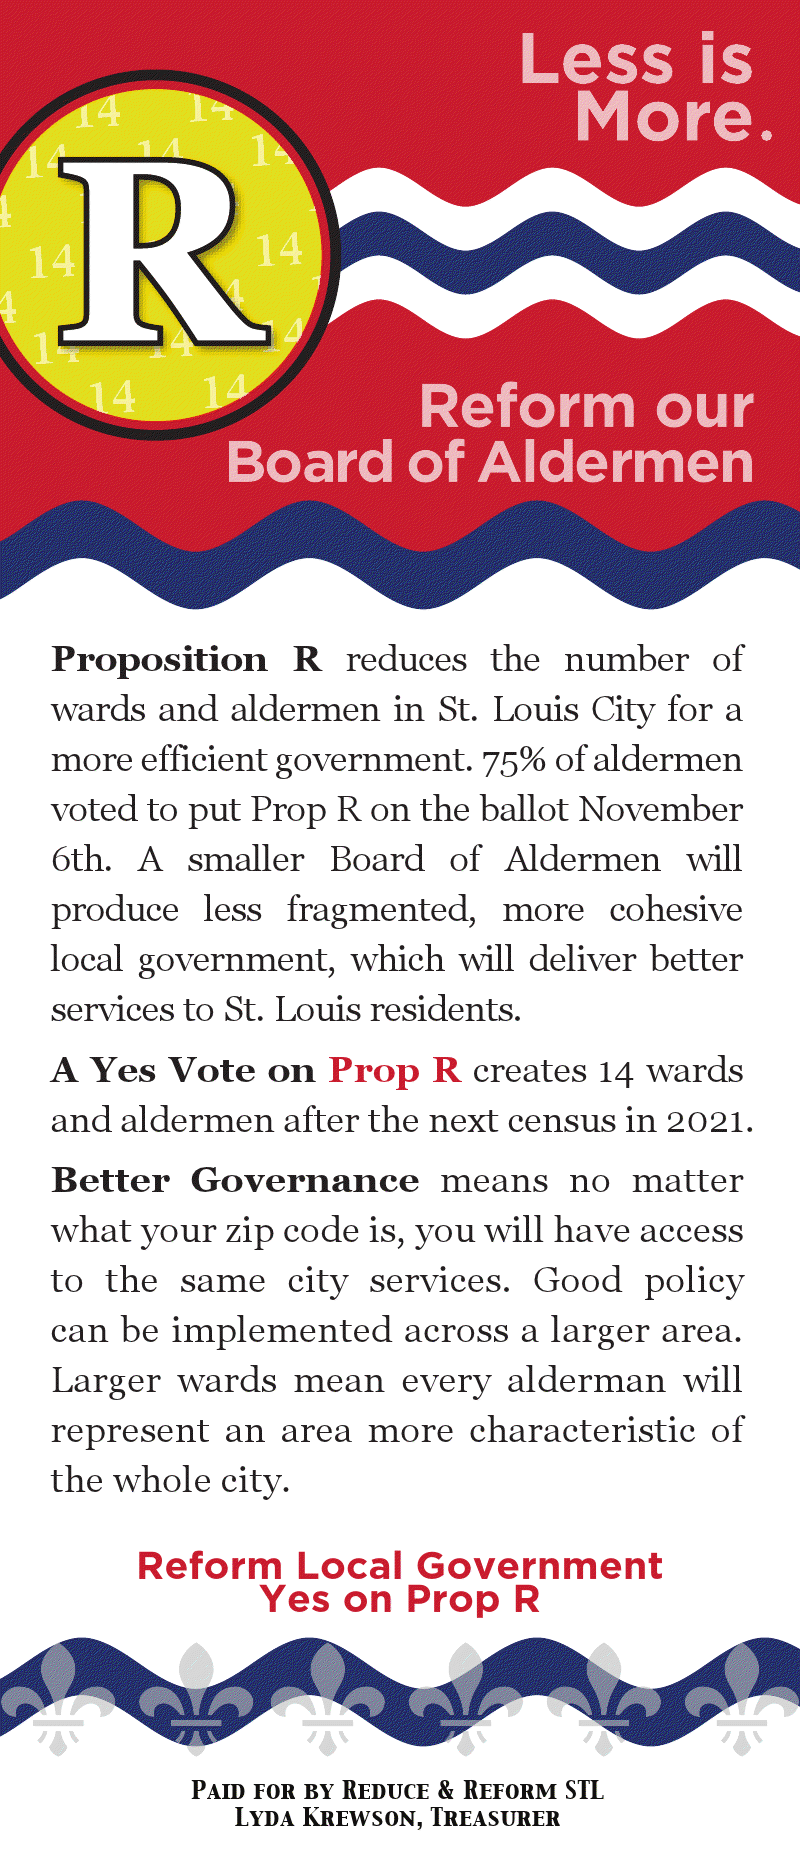 Less is More: Prop R TV Ad Hits the Air Tomorrow